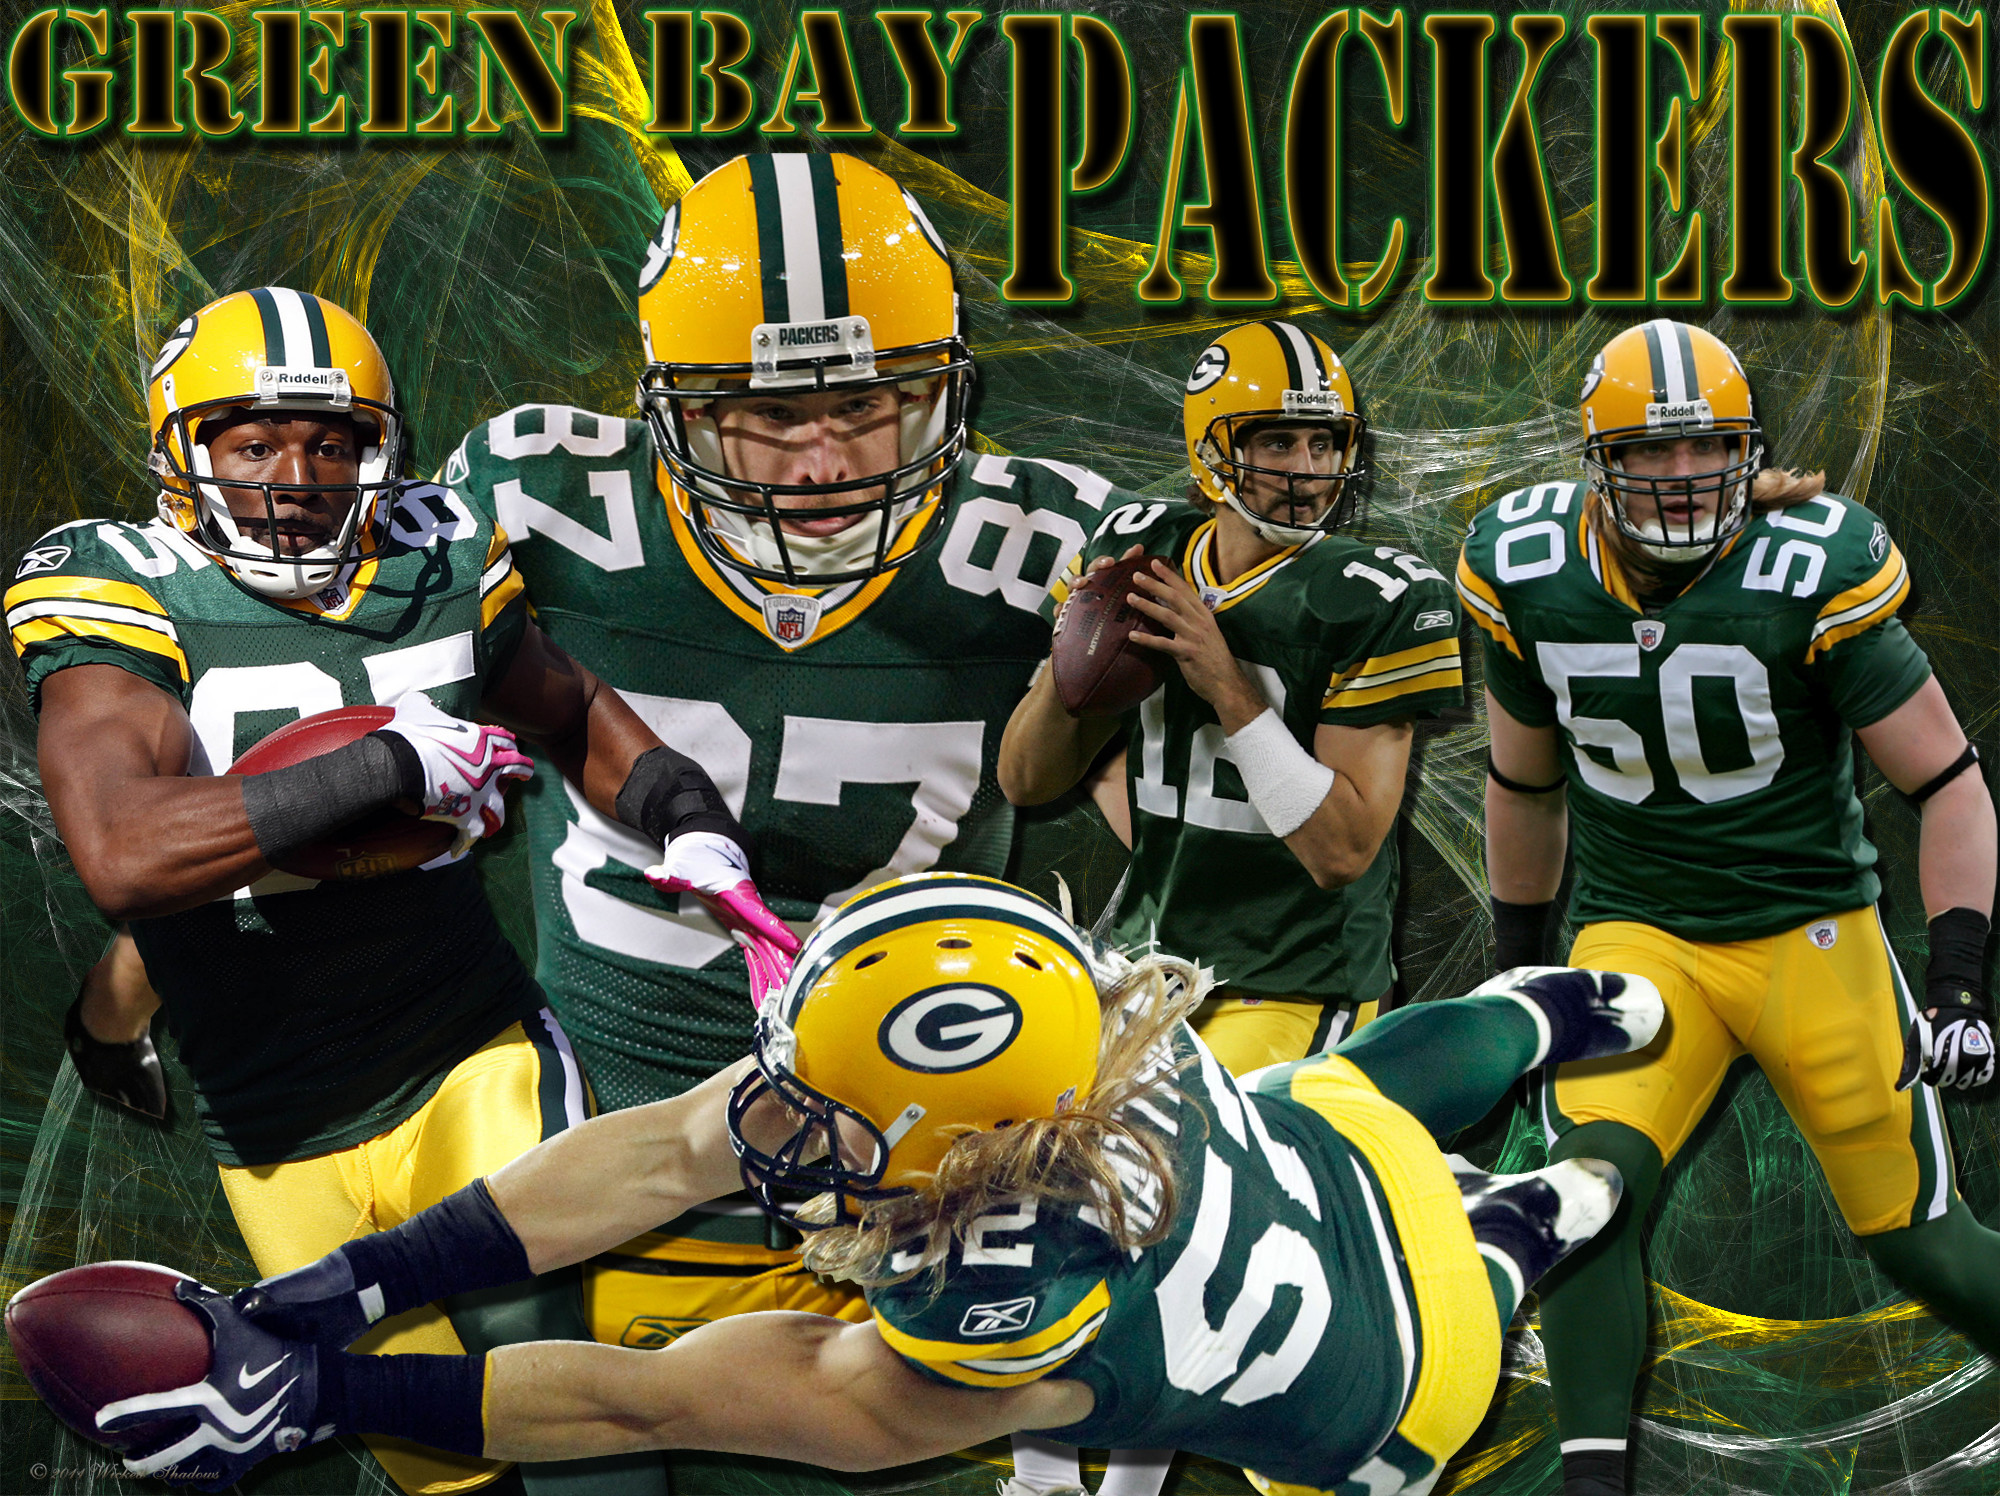 2000x1496 Green bay packers team logo wallpaper 1280x1024 nfl .